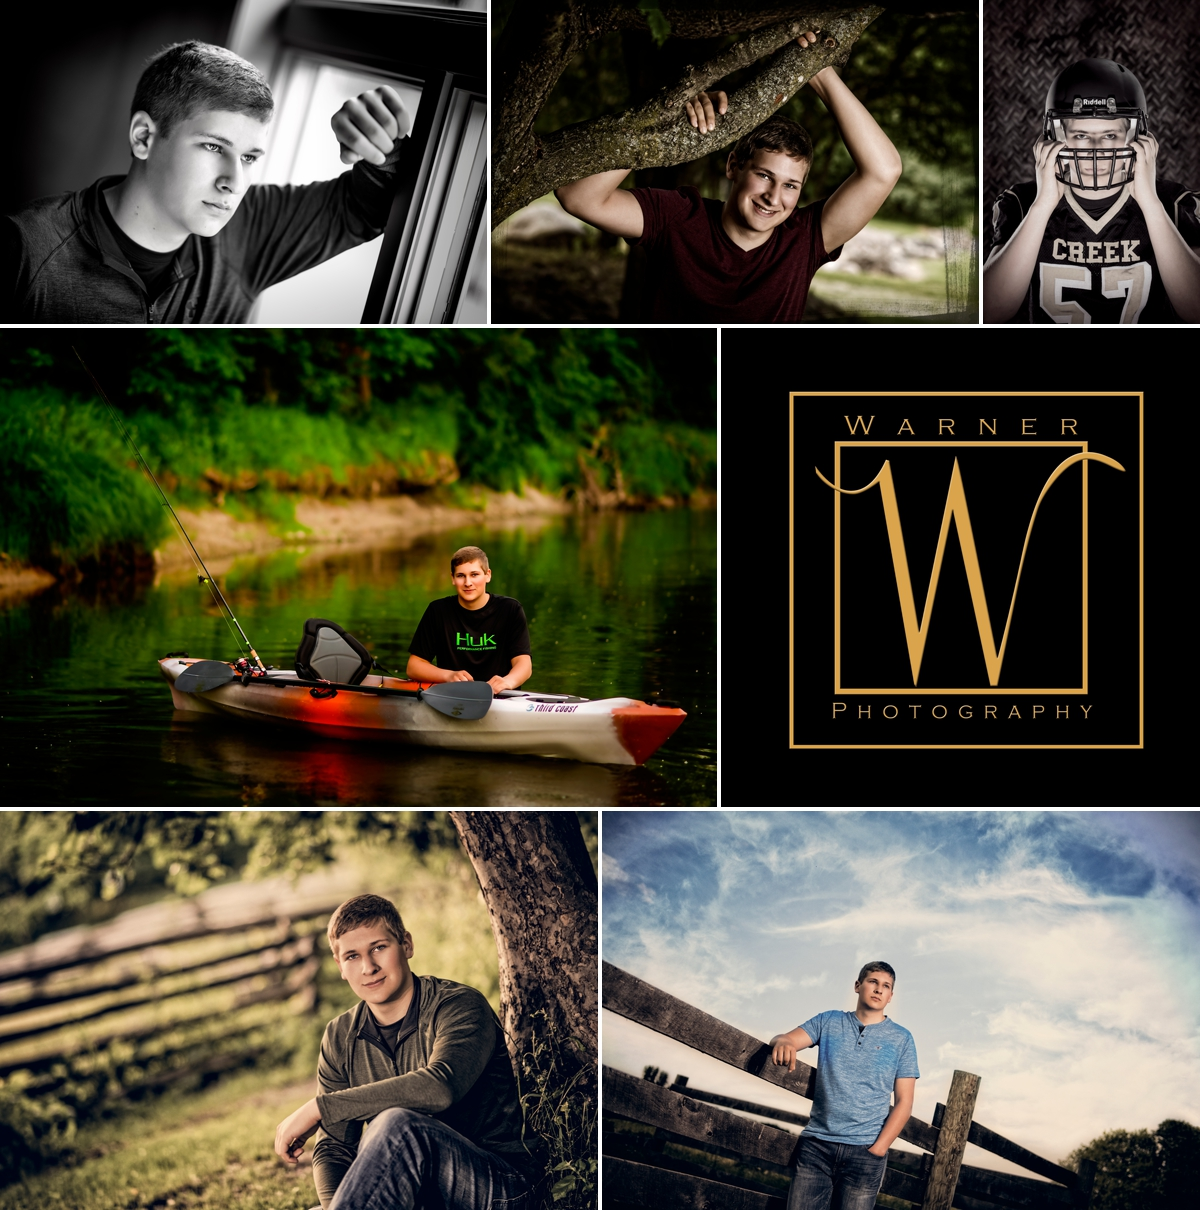 Tanner Senior Collage Photos by Warner Photography in Midland Michigan